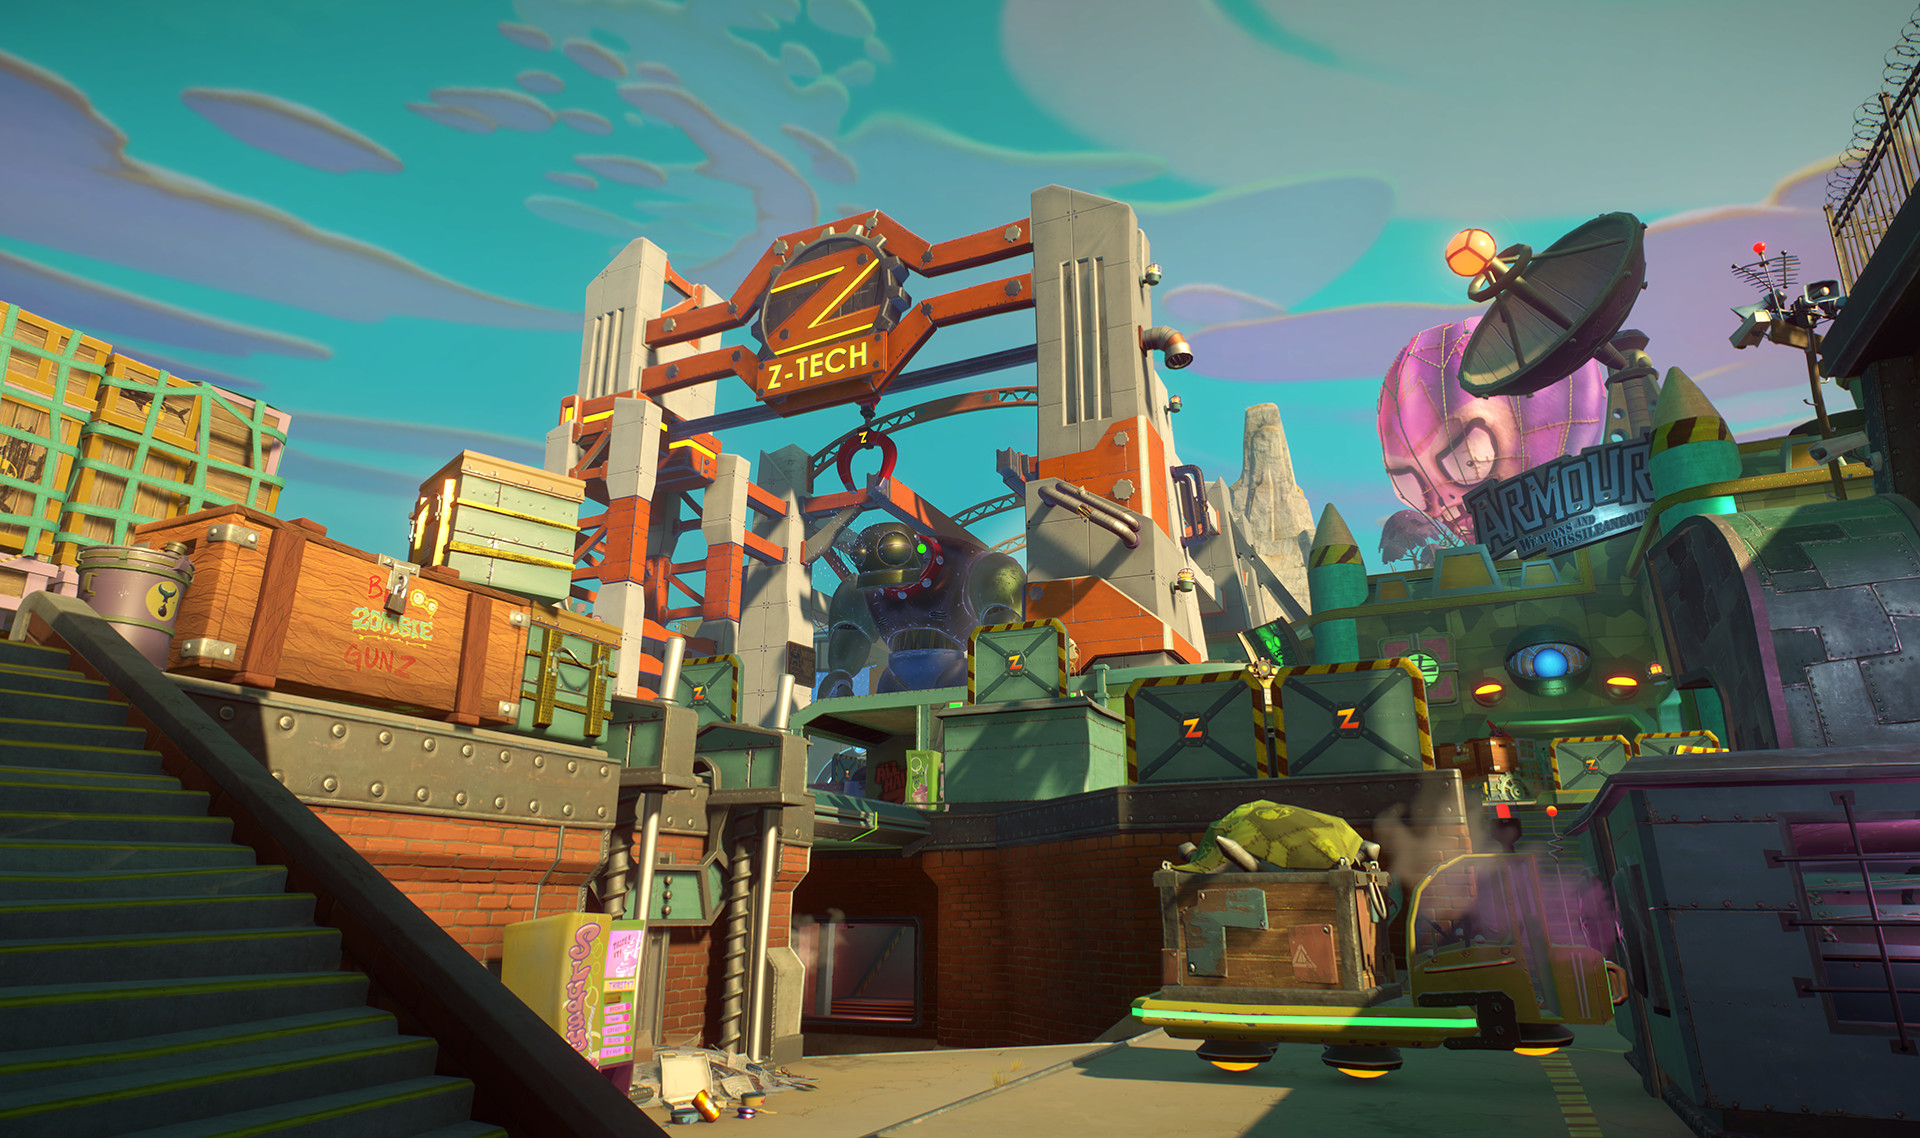 A screenshot from Plants vs Zombies: Garden Warfare 2. I created 3D environment concepts, final assets and environments